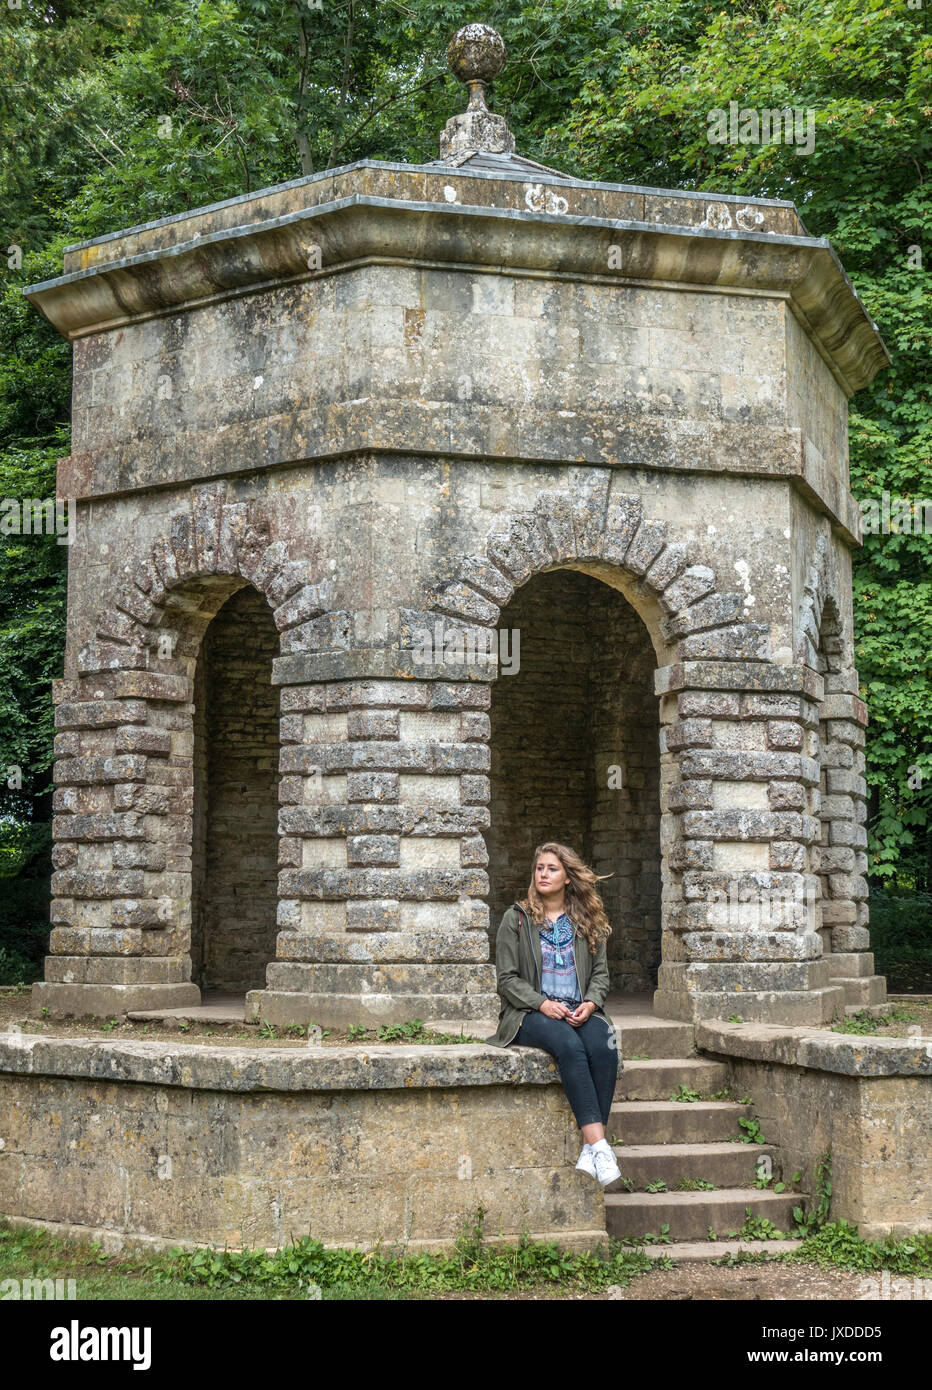 Pretty young woman sitting on The Hexagon Folly in Cirencester Park Gardens, on the Bathurst Estate, Cirencester, Gloucestershire, England, UK. - Stock Image